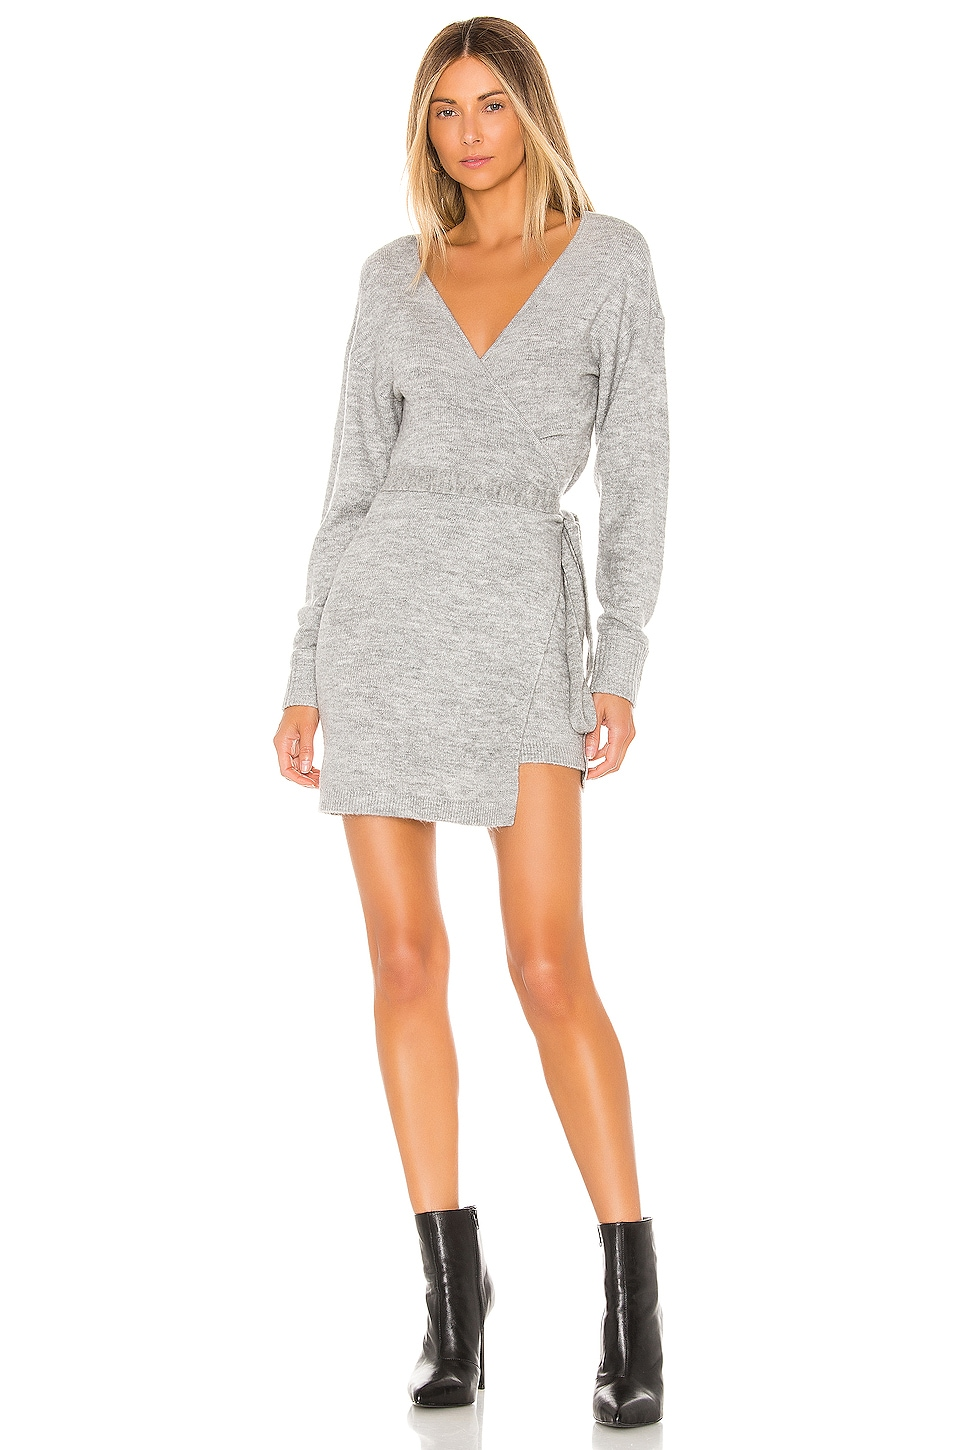 Lovers + Friends Aimilita Wrap Sweater in Ash Grey